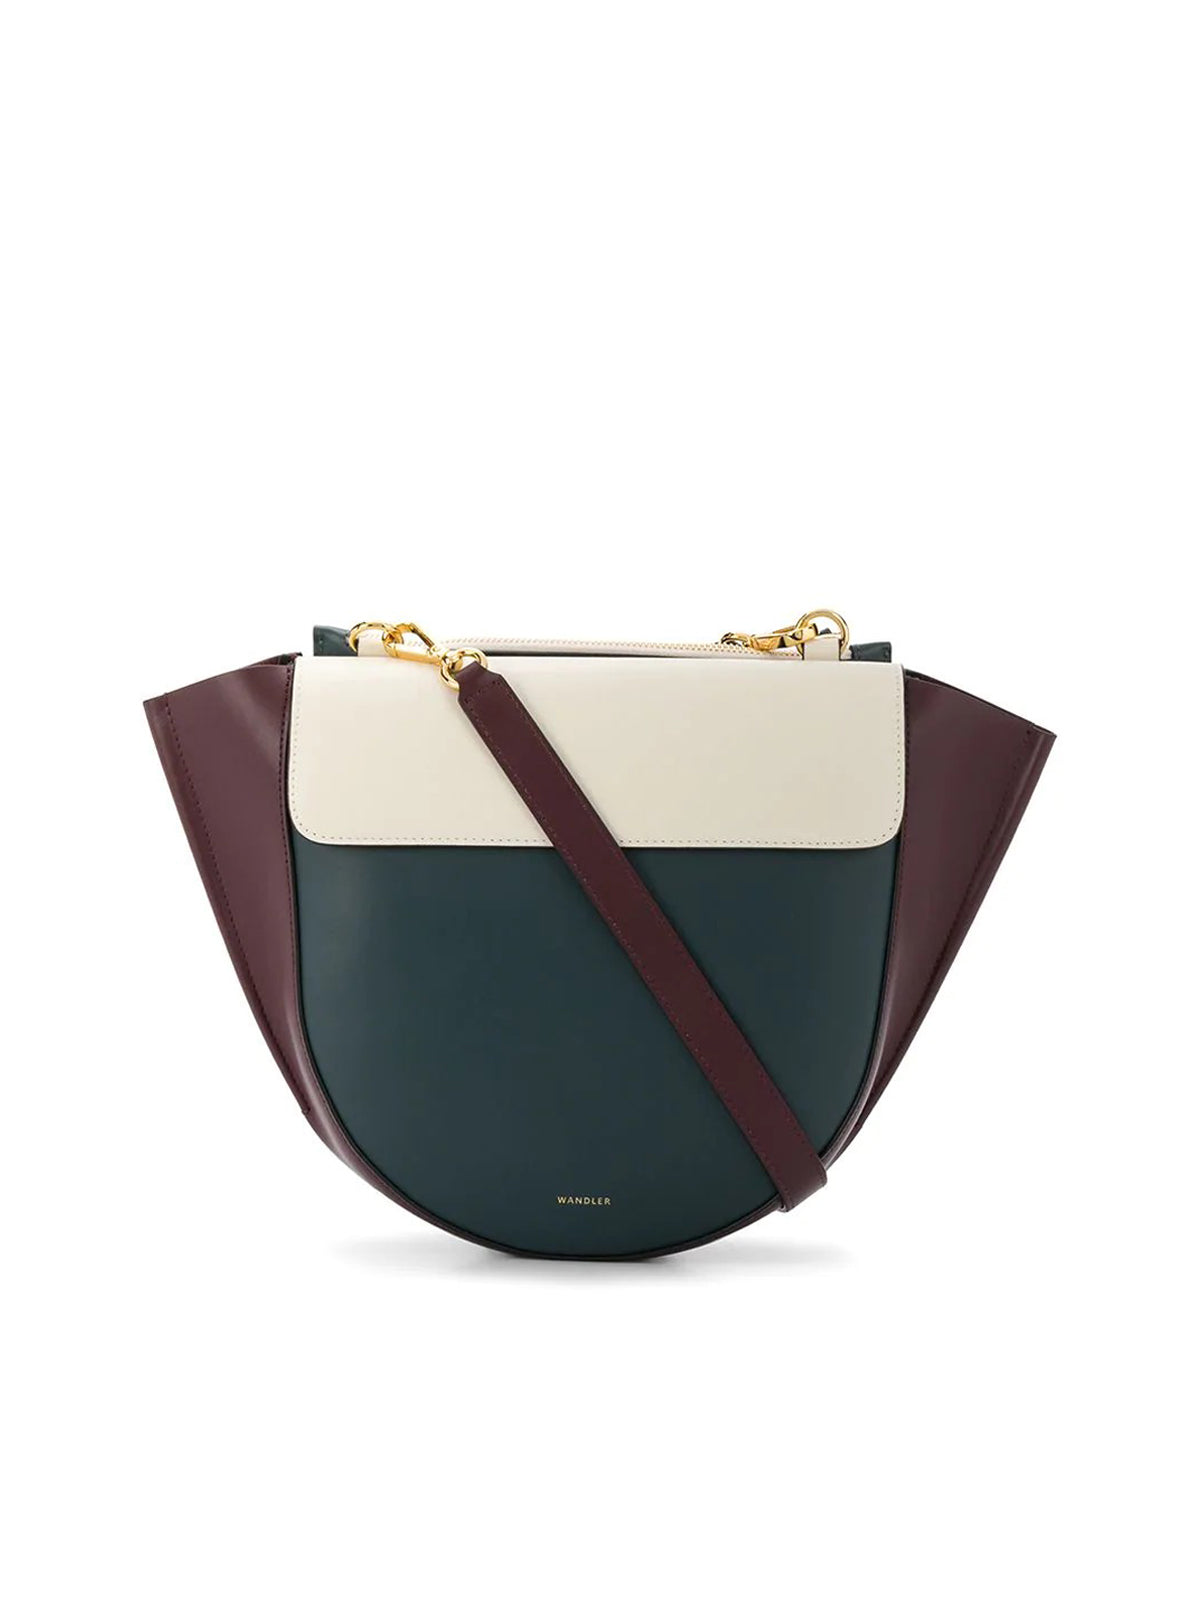 Hortensia medium shoulder bag